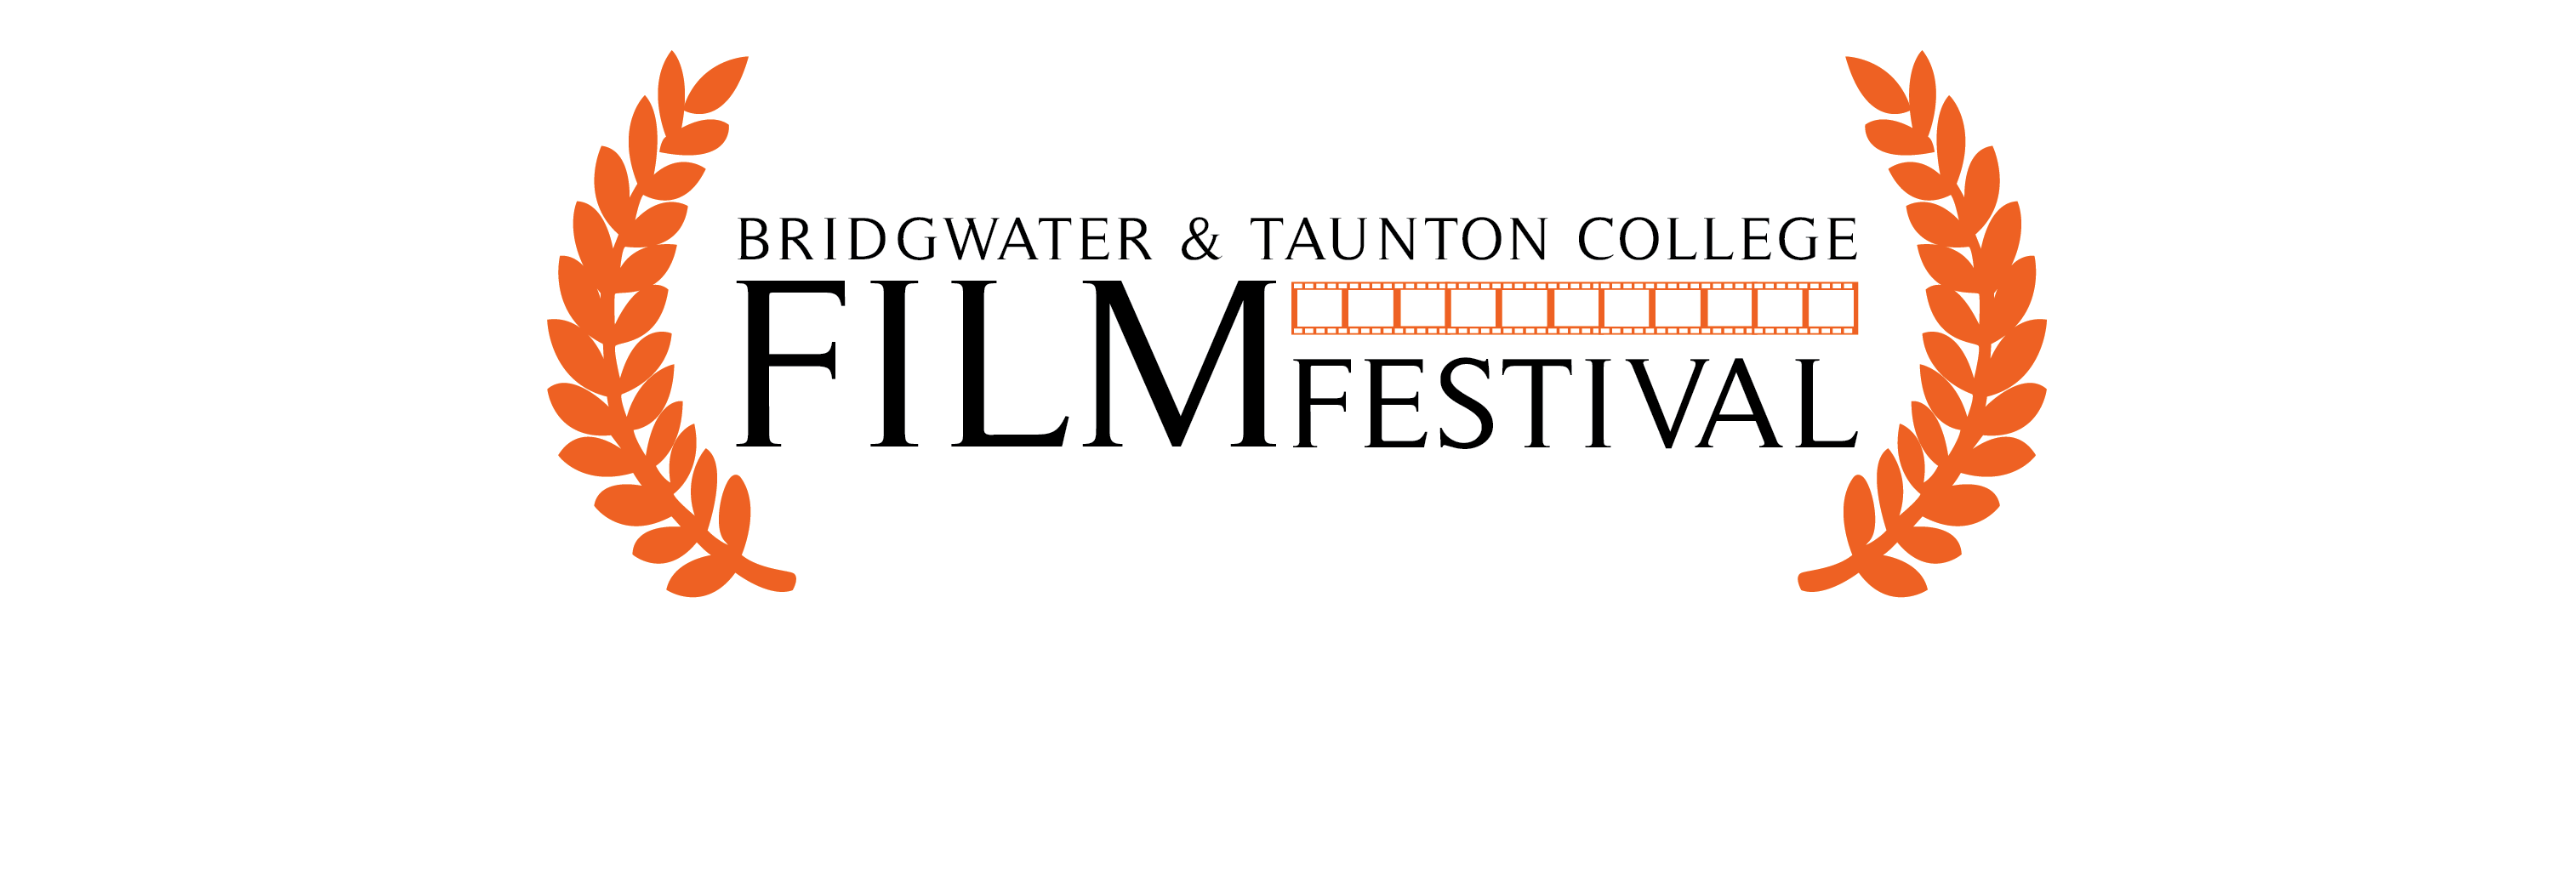 film festivalBridgwater and Taunton College Film Festiva